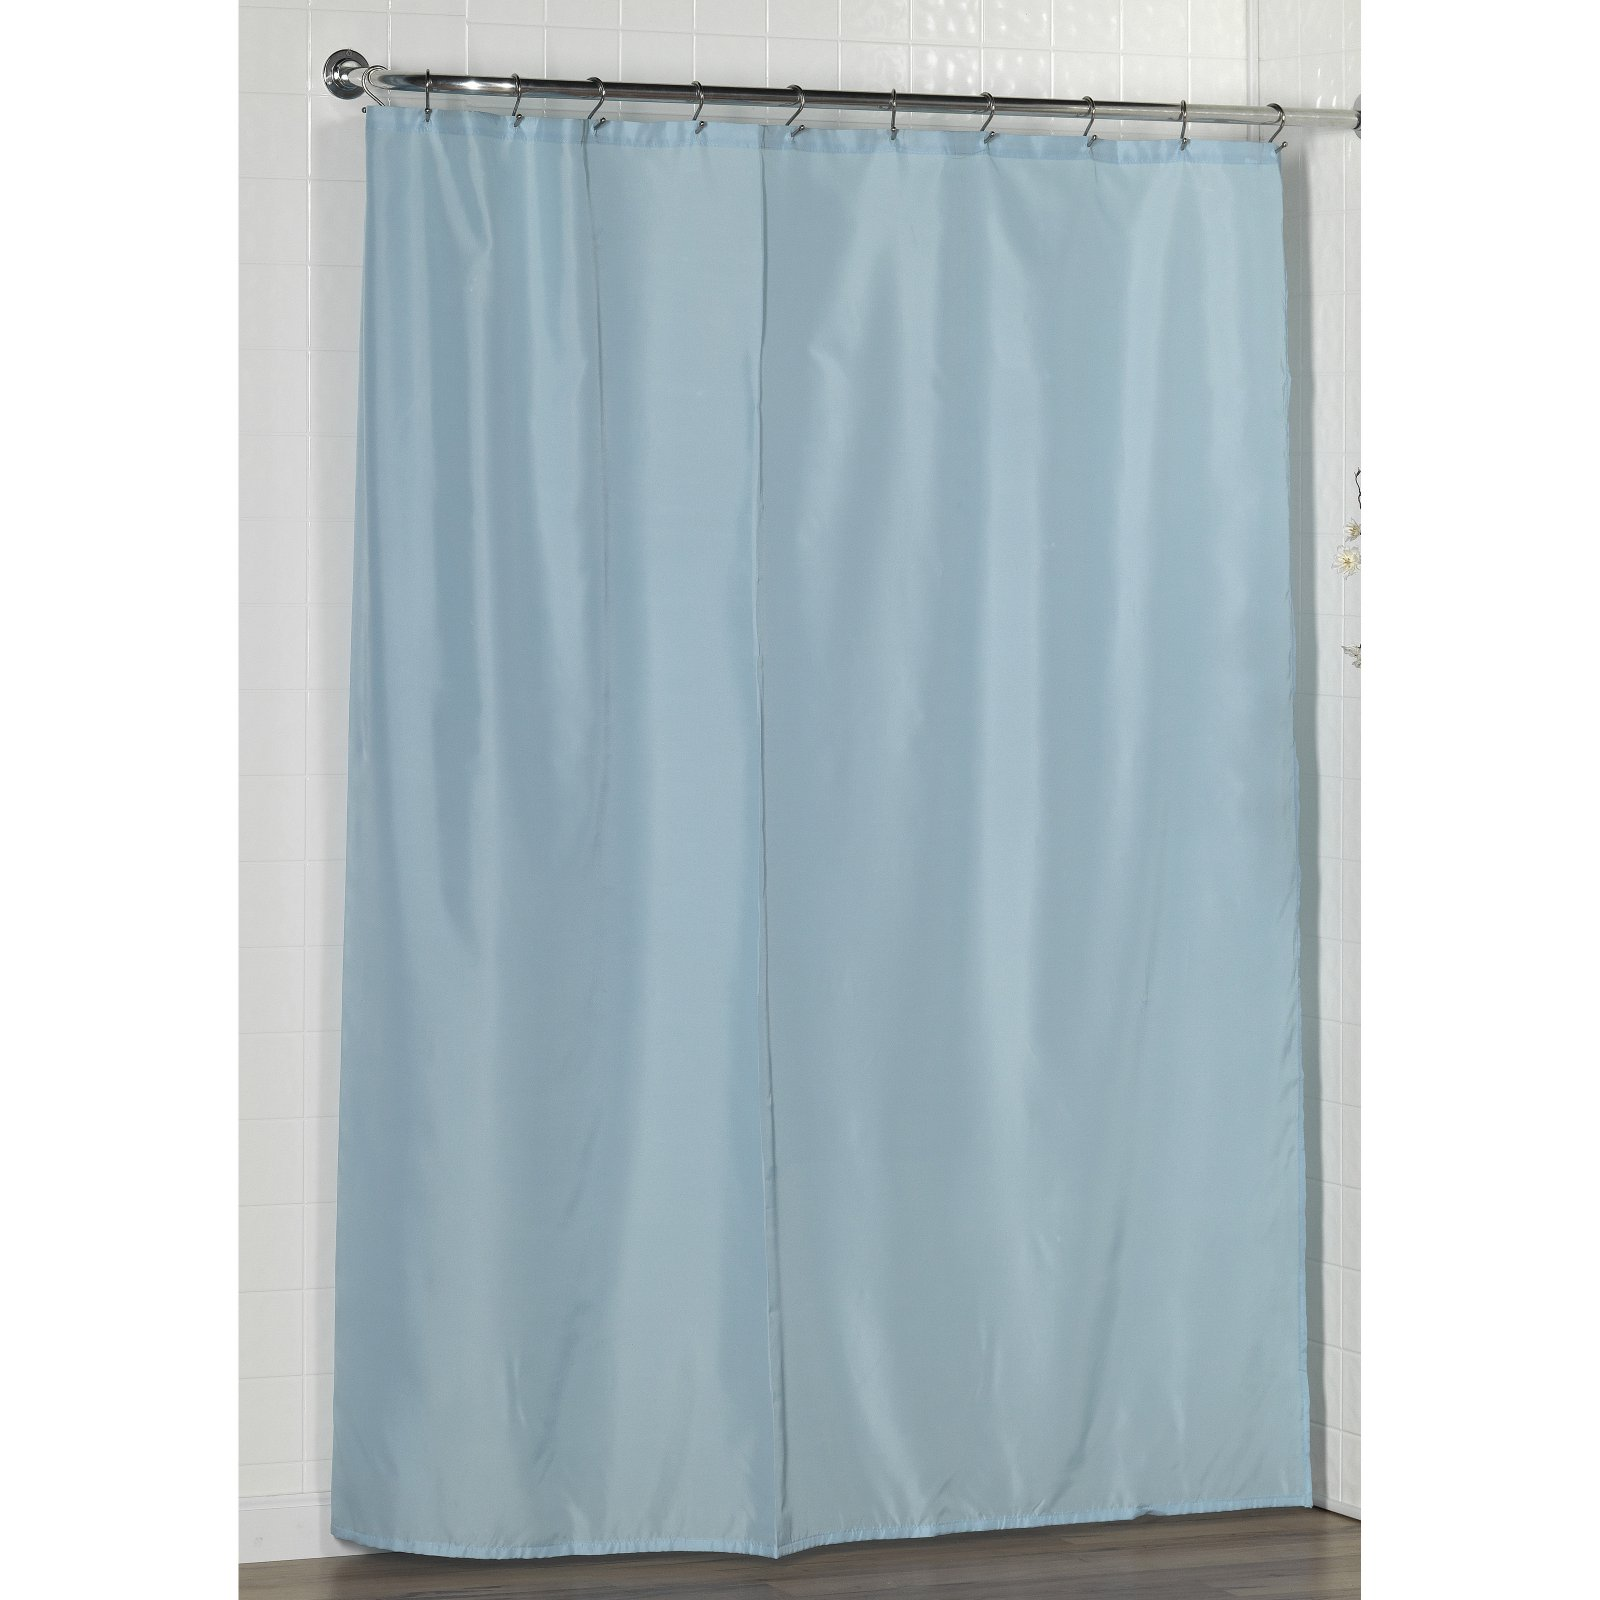 Shower curtain liner with bottom weights